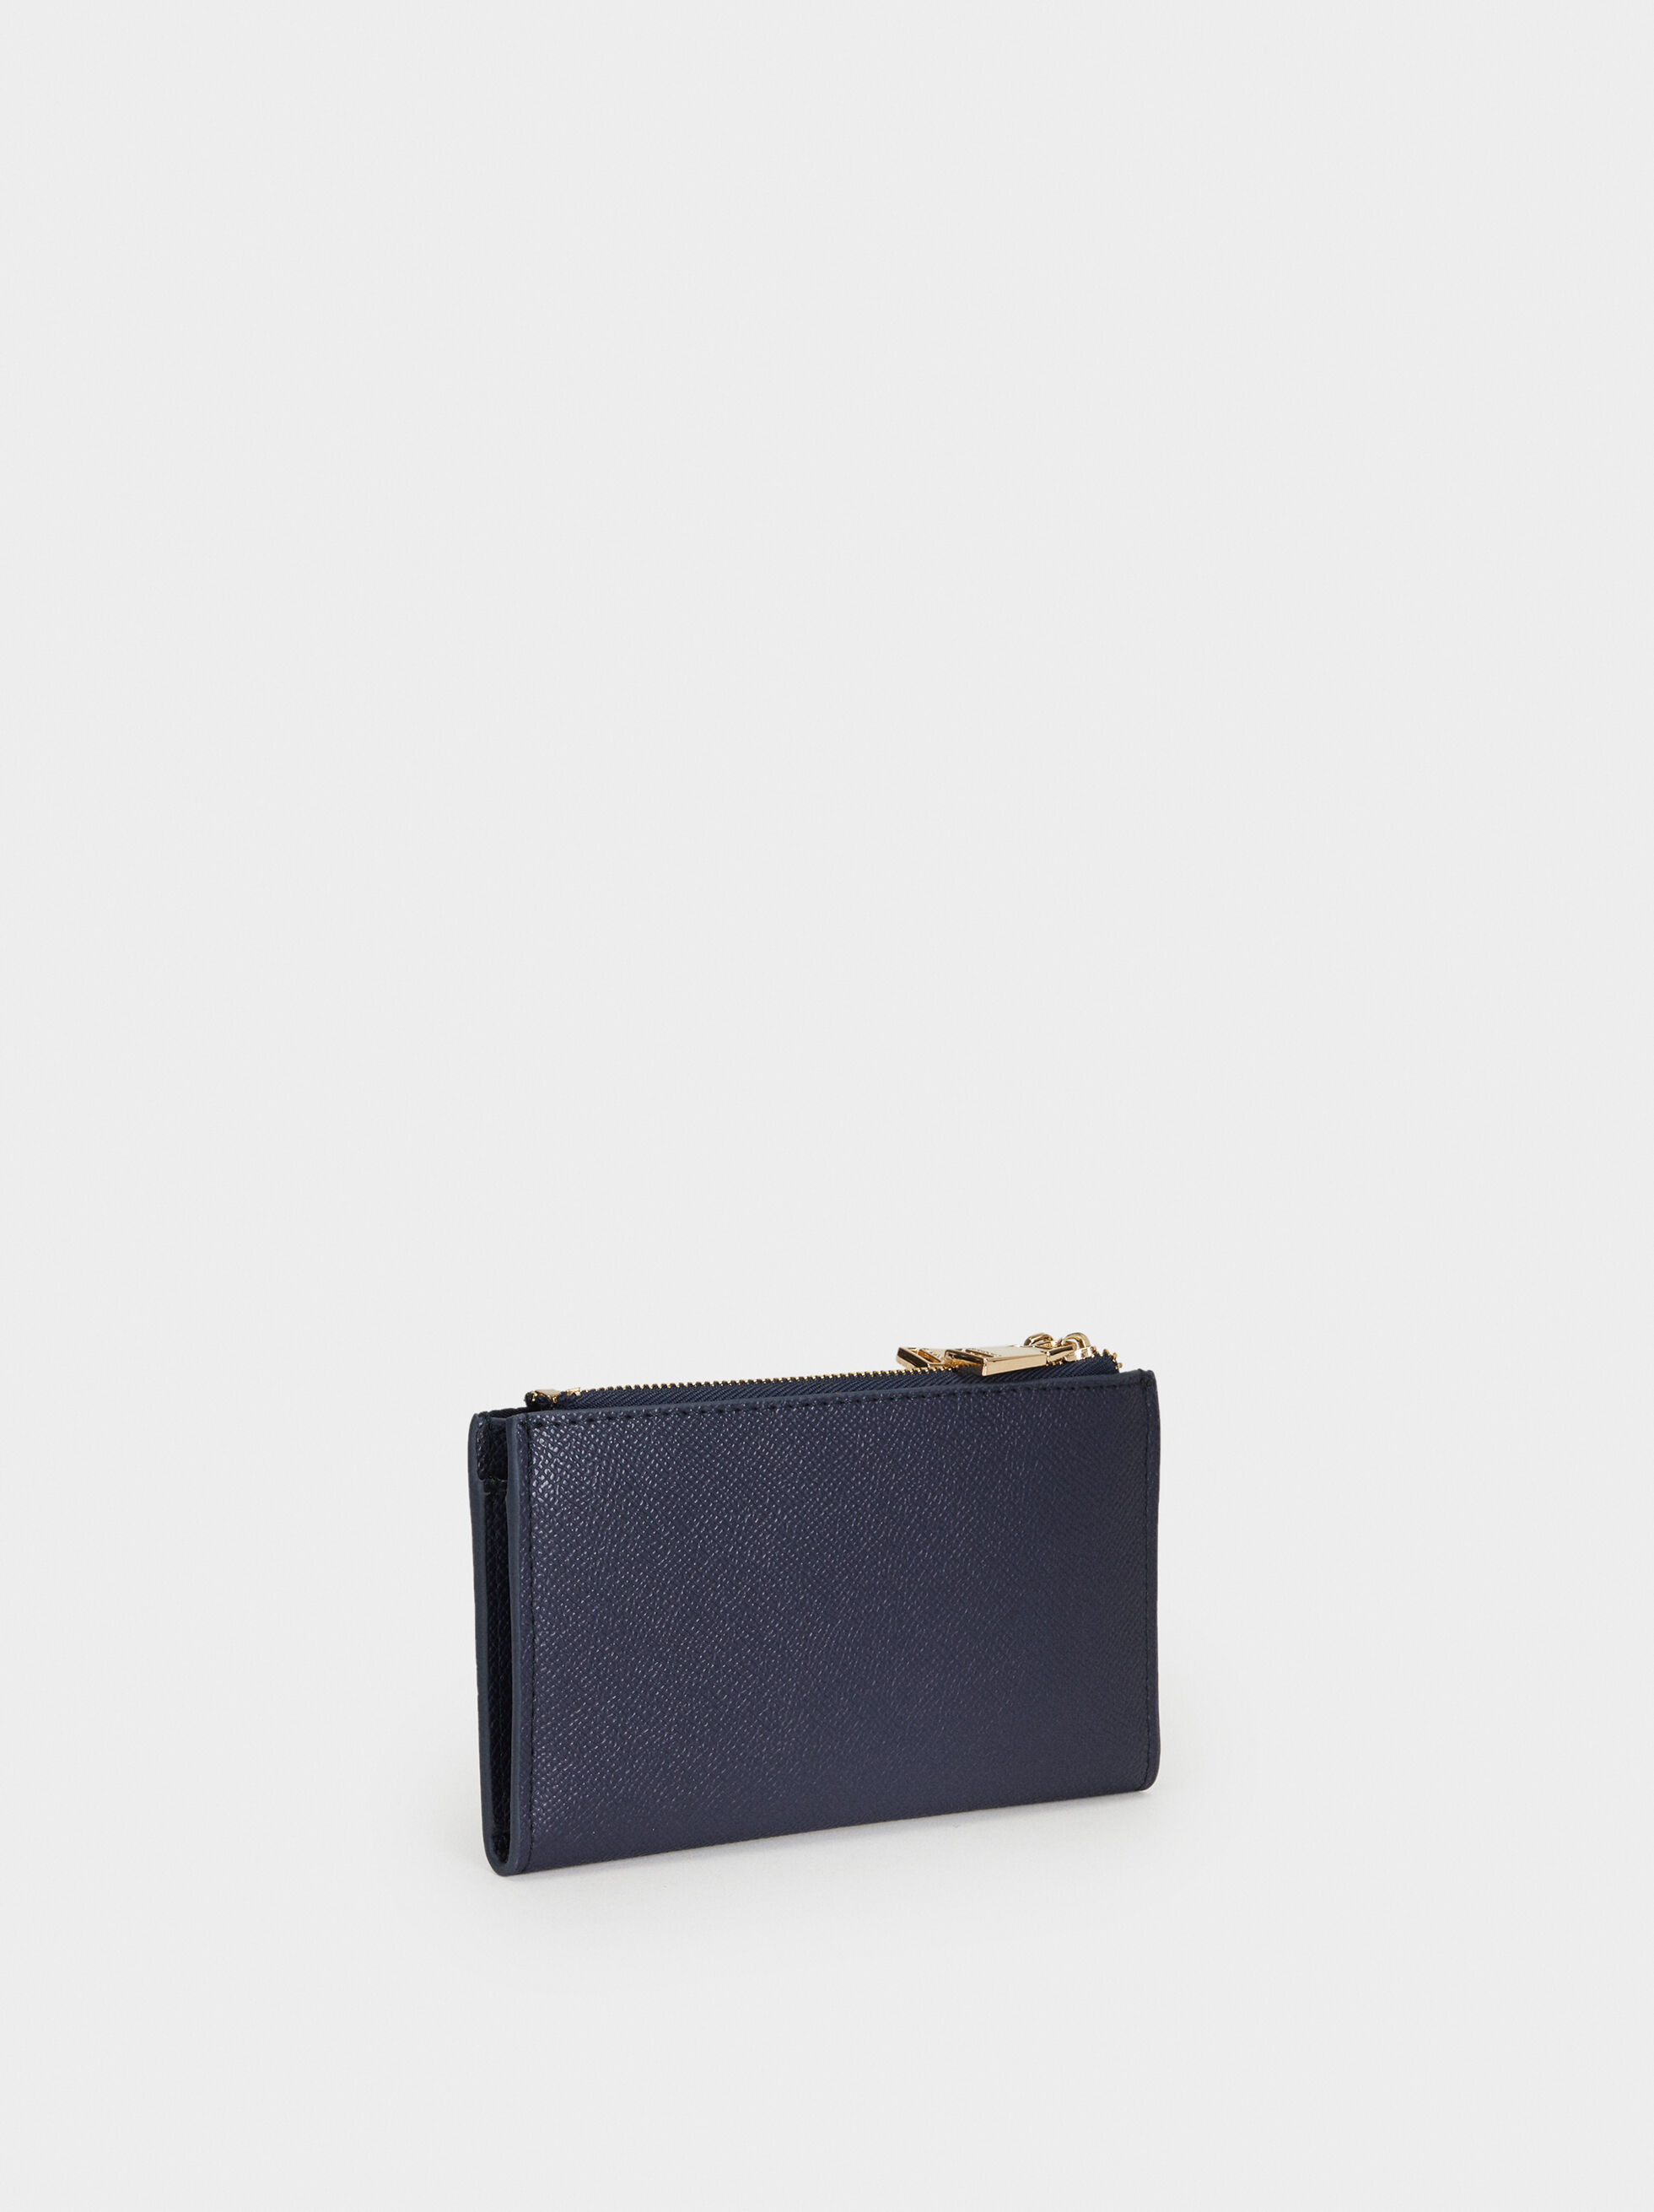 Medium Smooth Purse, Navy, hi-res